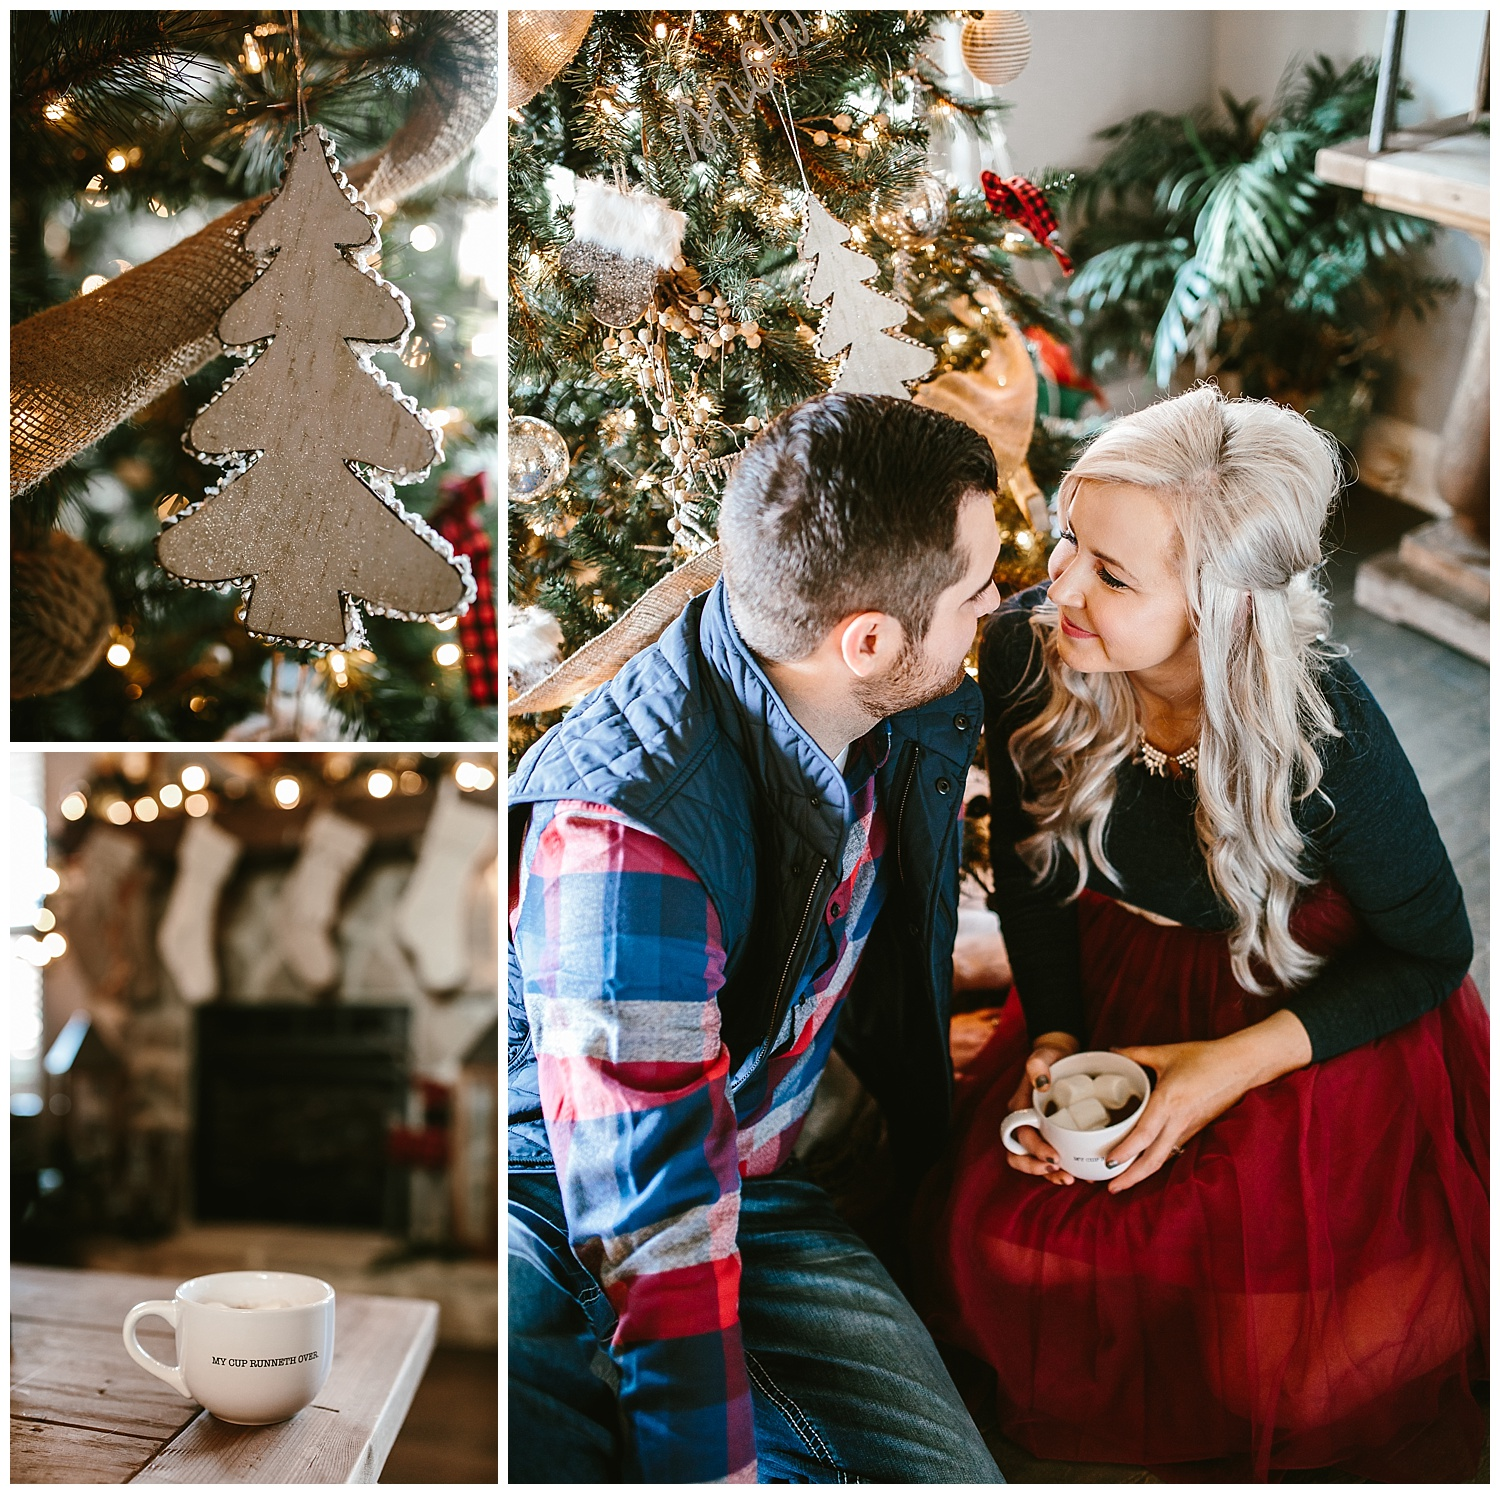 Lifestyle at home Christmas engagement shoot-13.jpg